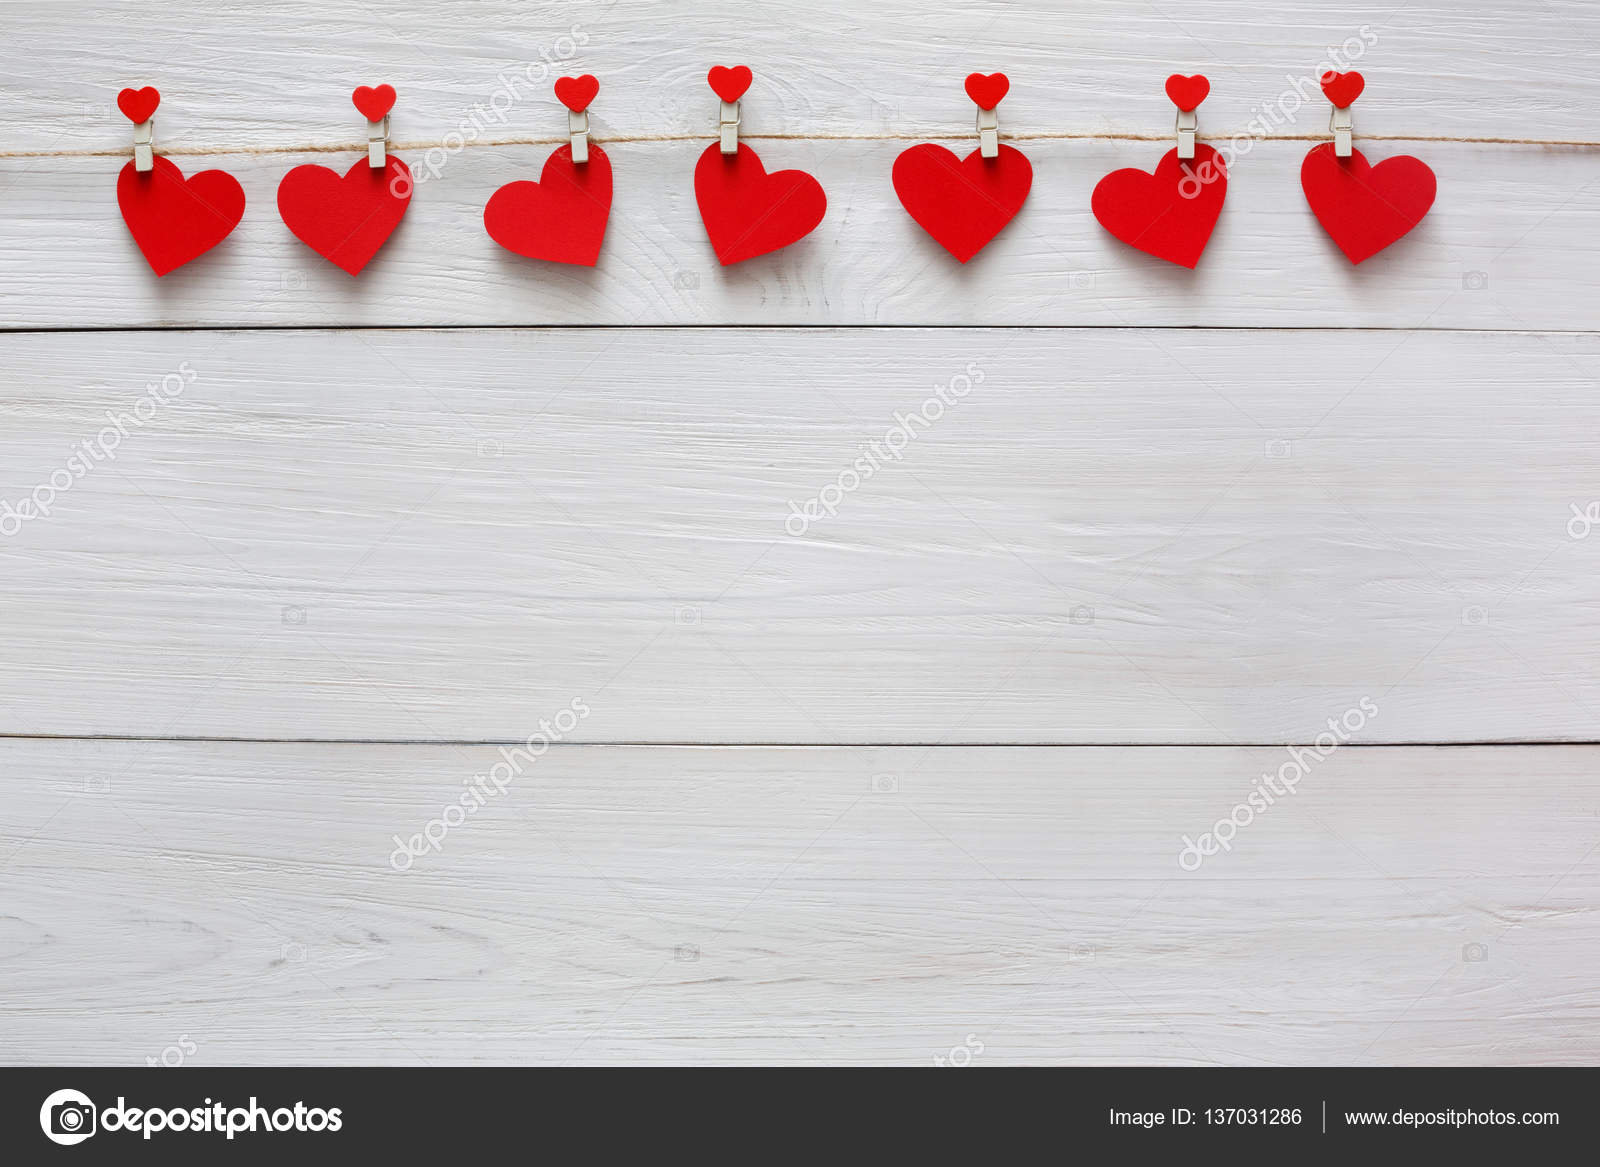 Valentine Background With Red Paper Hearts Row Border On Clothespins White Rustic Wood Planks Happy Lovers Day Card Mockup Copy Space Photo By Milkos